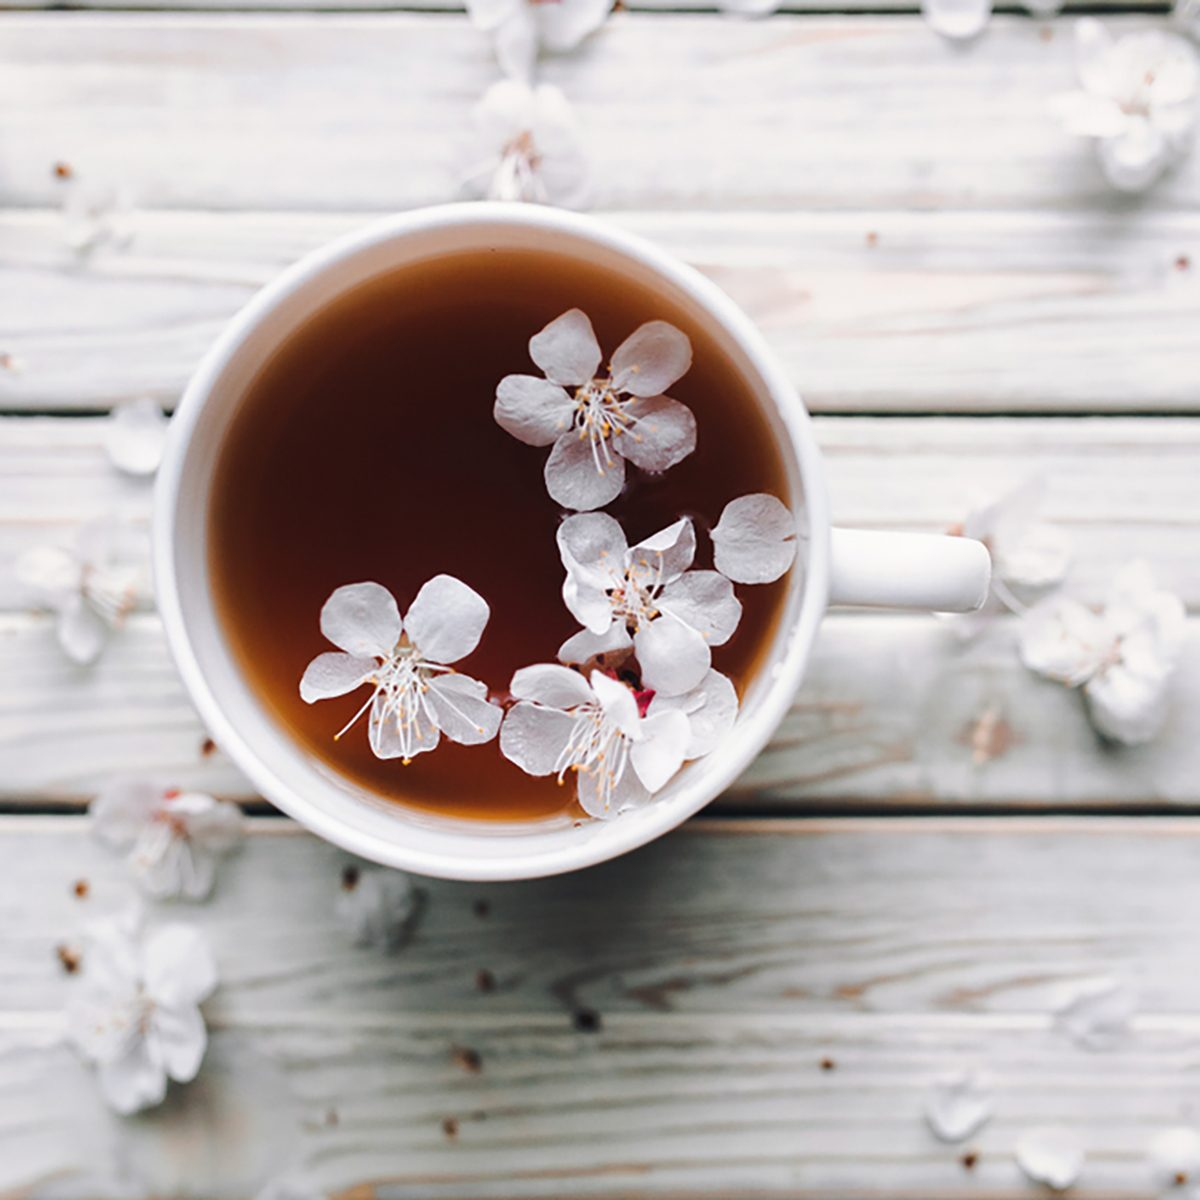 Cup of tea and spring apricot blossom on a white wooden background.